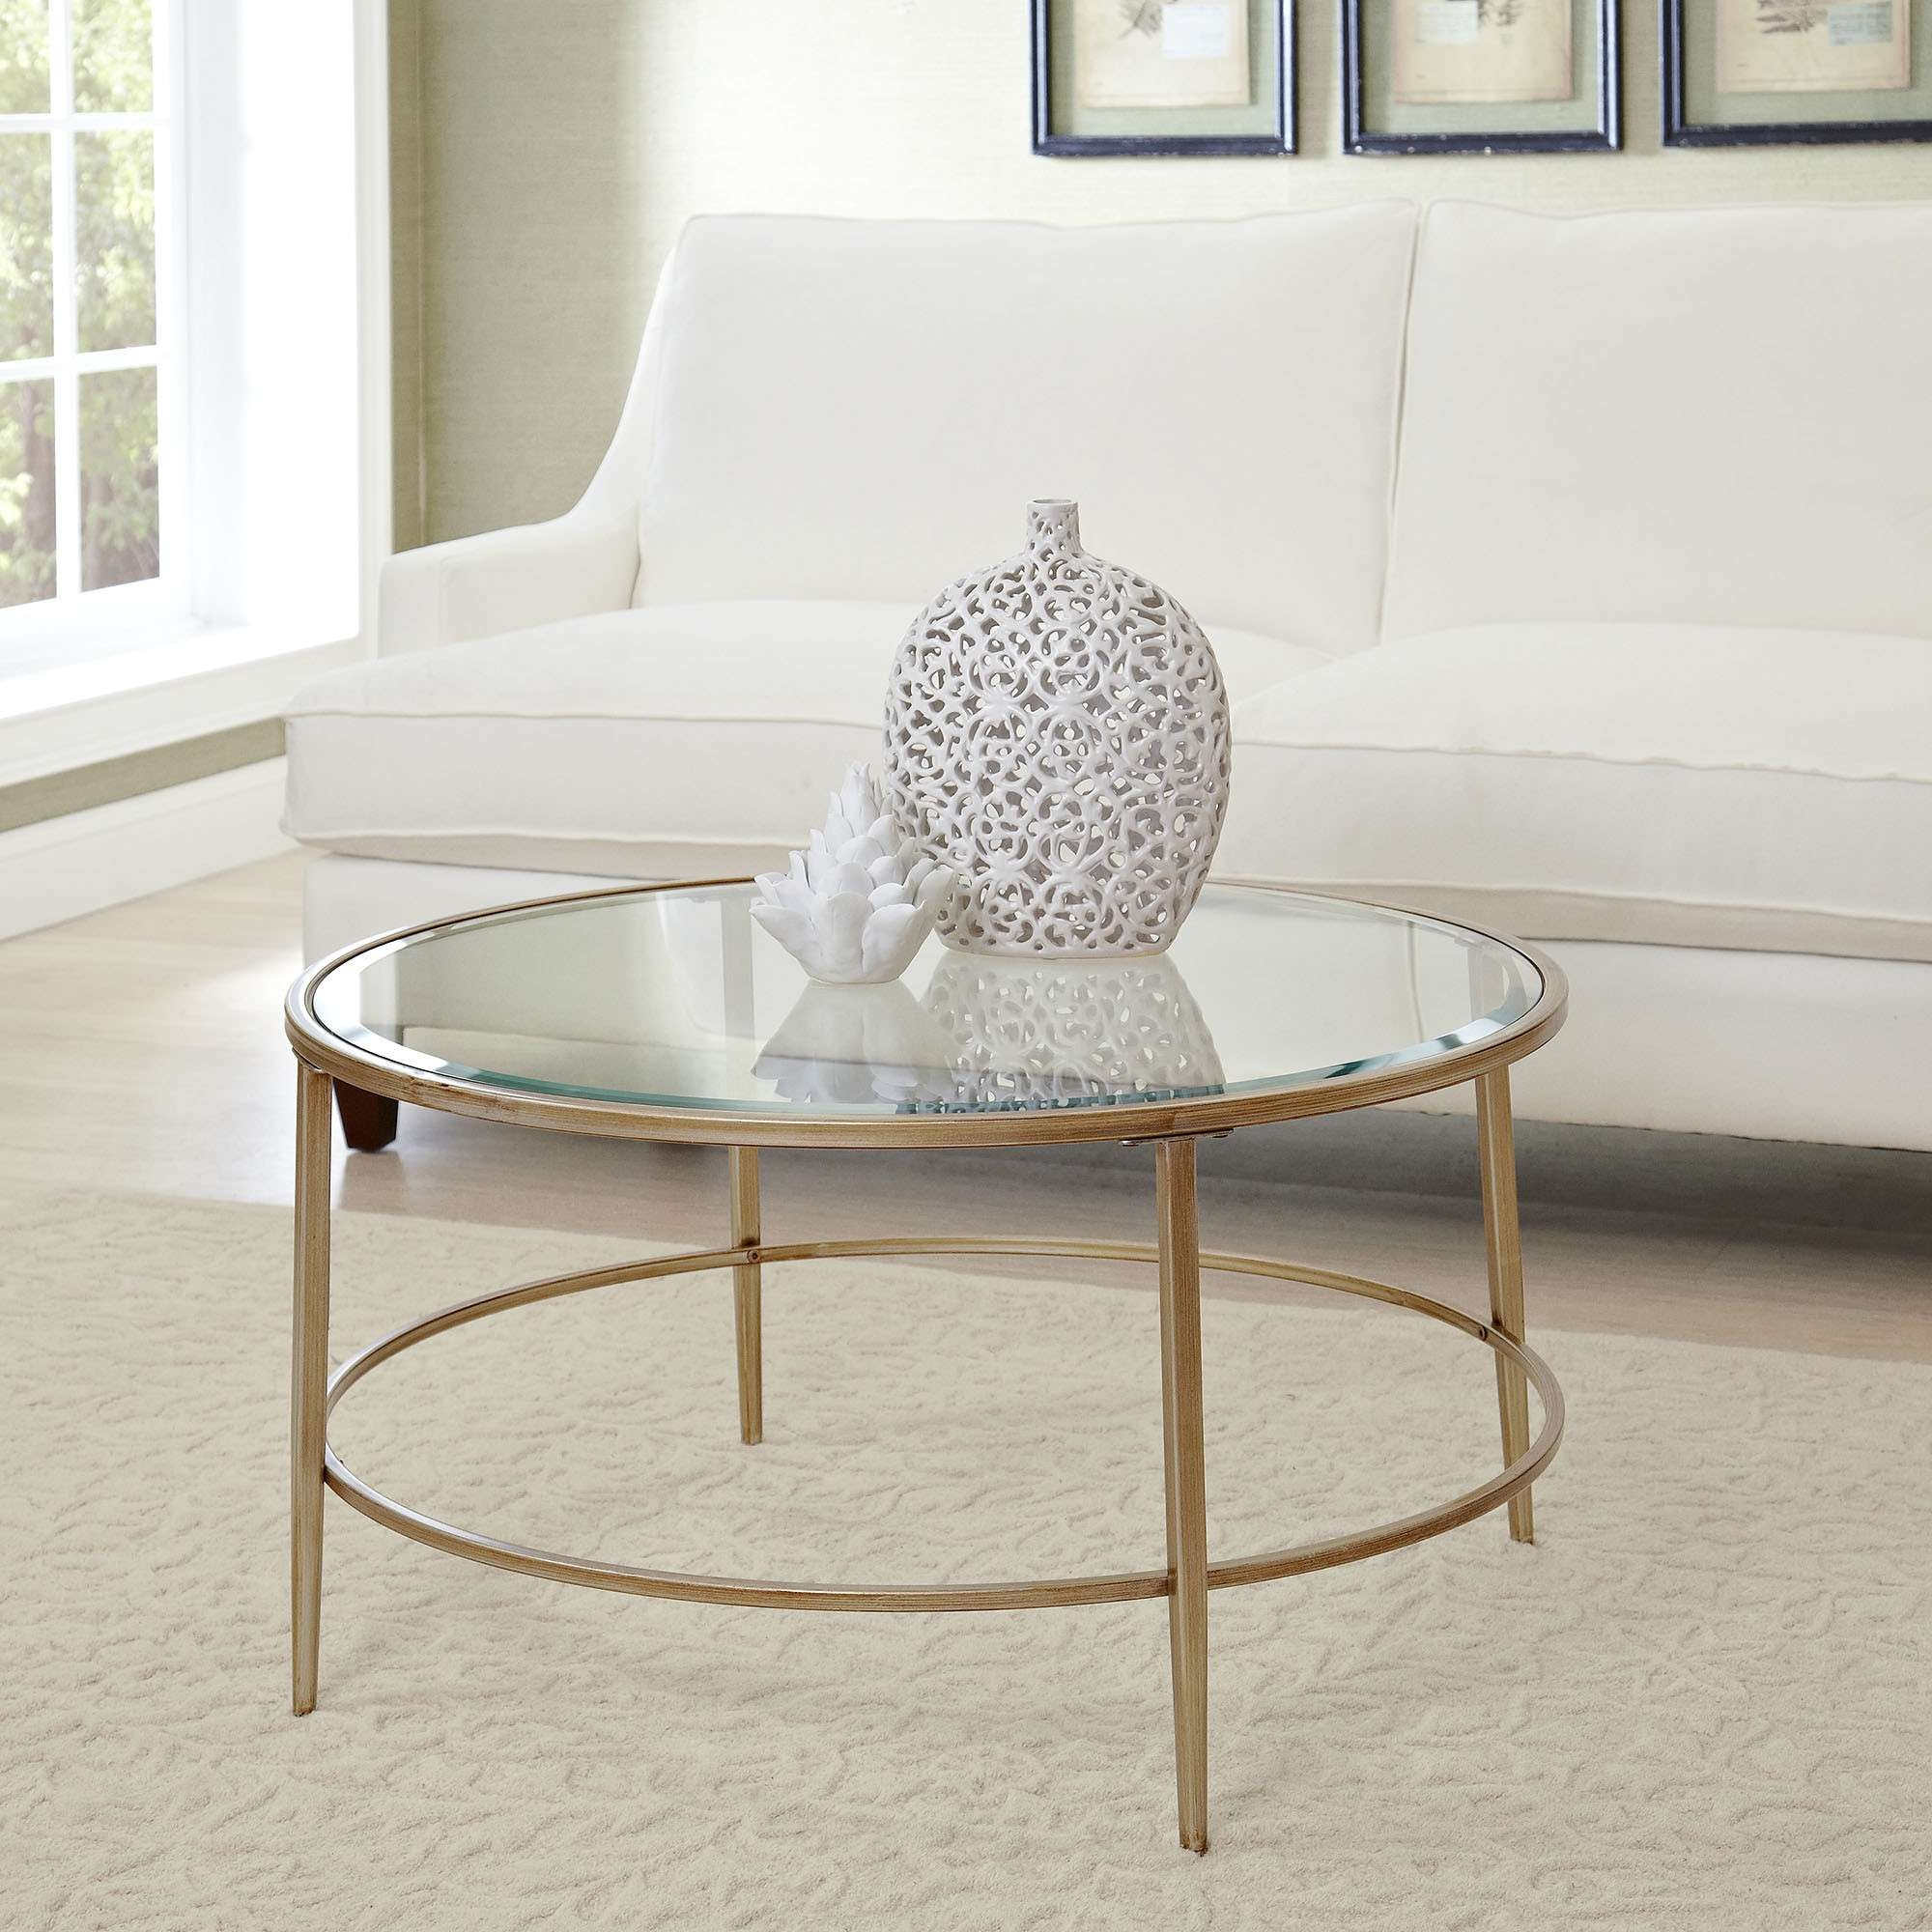 Coffee Tables : Coffee Table Wayfair Glass In Splendid Round In Newest Wayfair Coffee Table Sets (View 12 of 20)